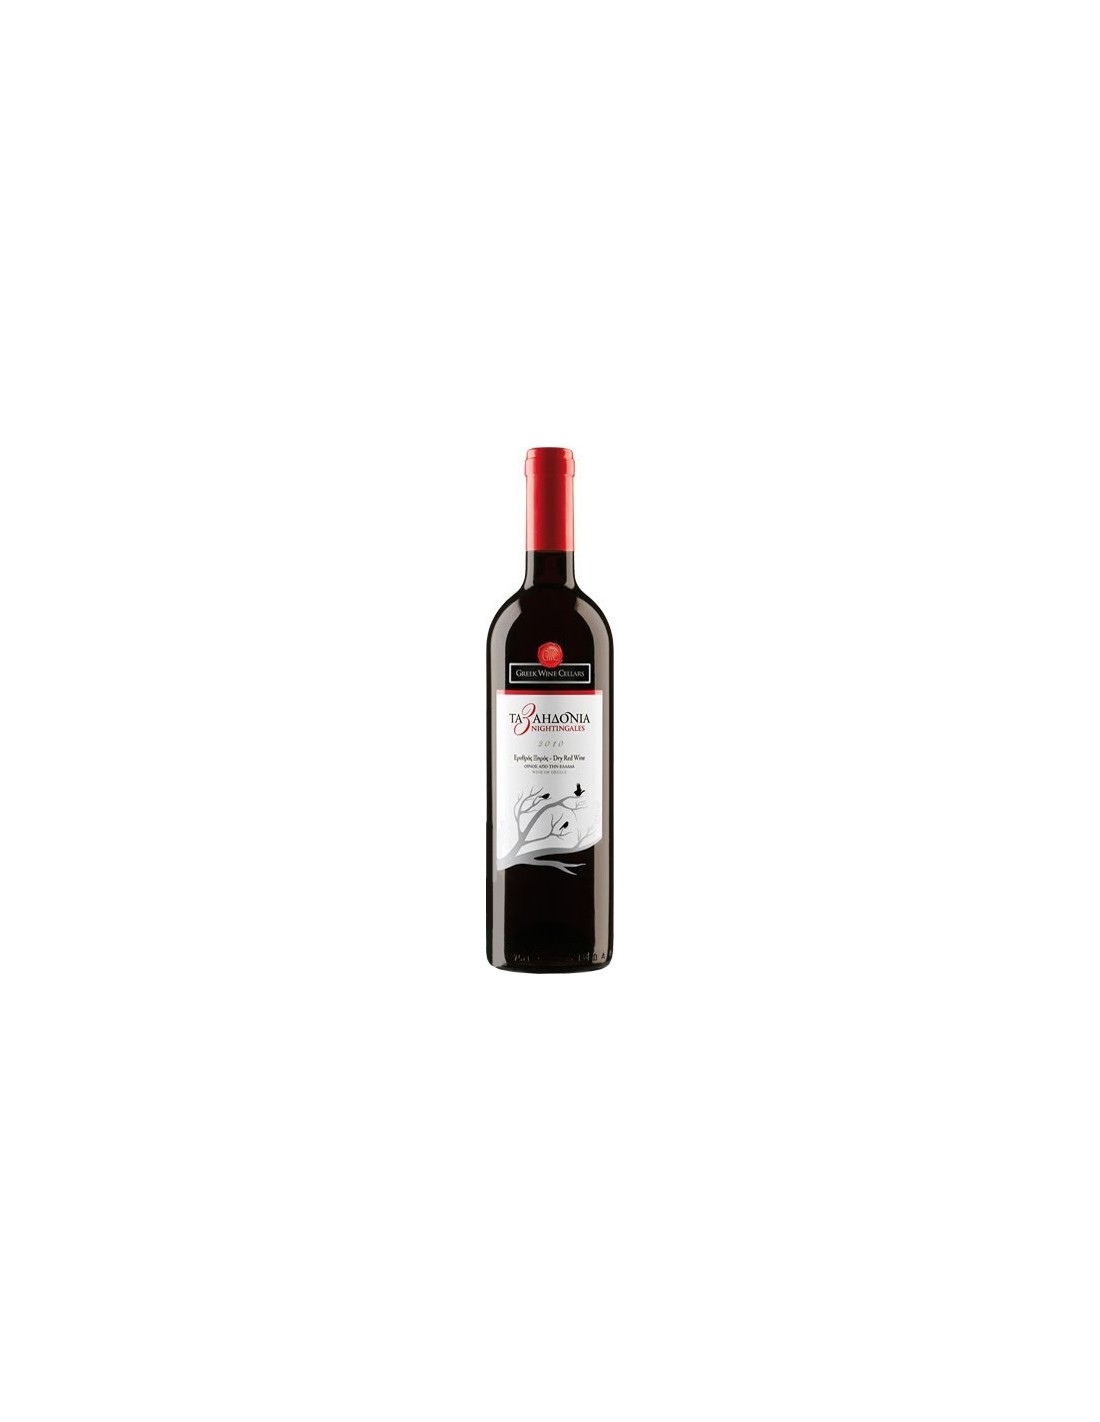 Vin rosu, Cupaj, The 3nightingales Nemea, 0.75L, Grecia